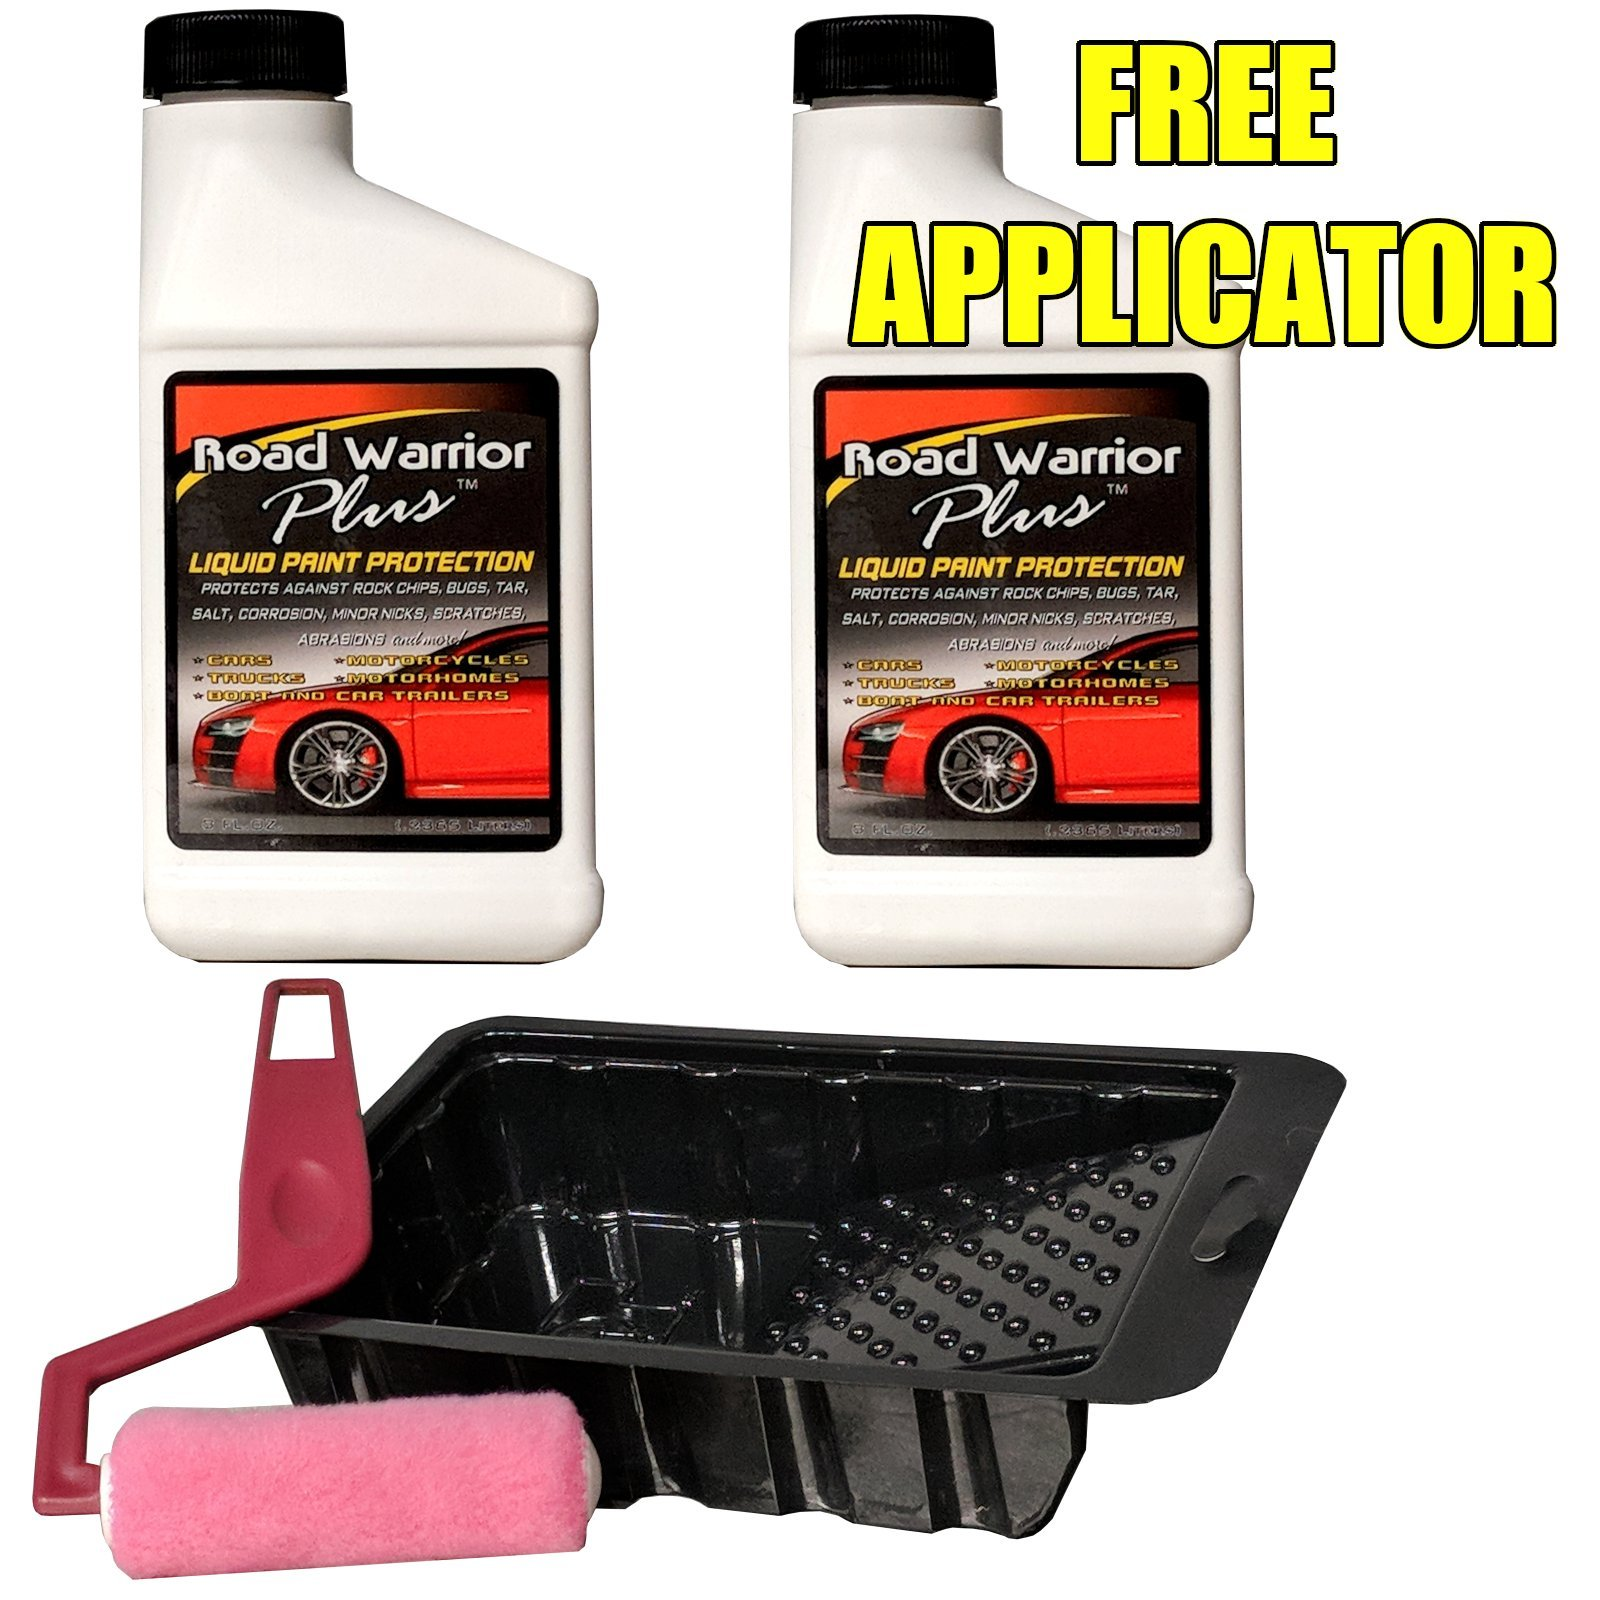 Road Warrior Plus Paint Protection Film for Rock Chips & Bugs - 16oz kit - Free APPLICATOR